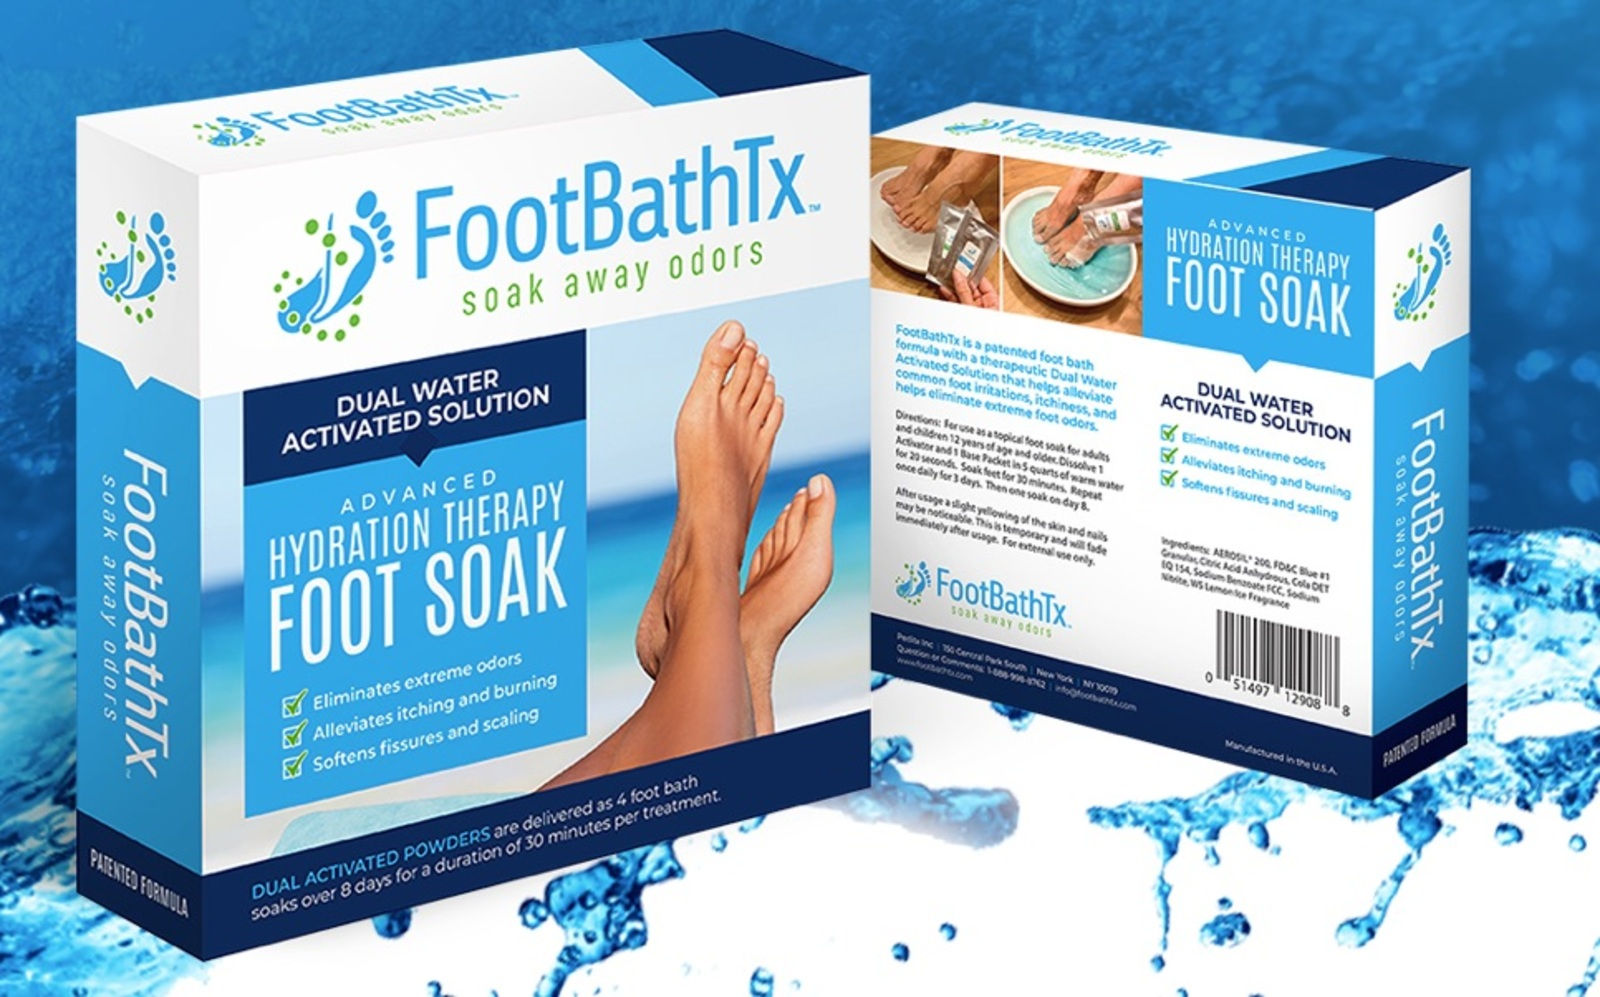 Advanced Hydration Therapy Foot Soak